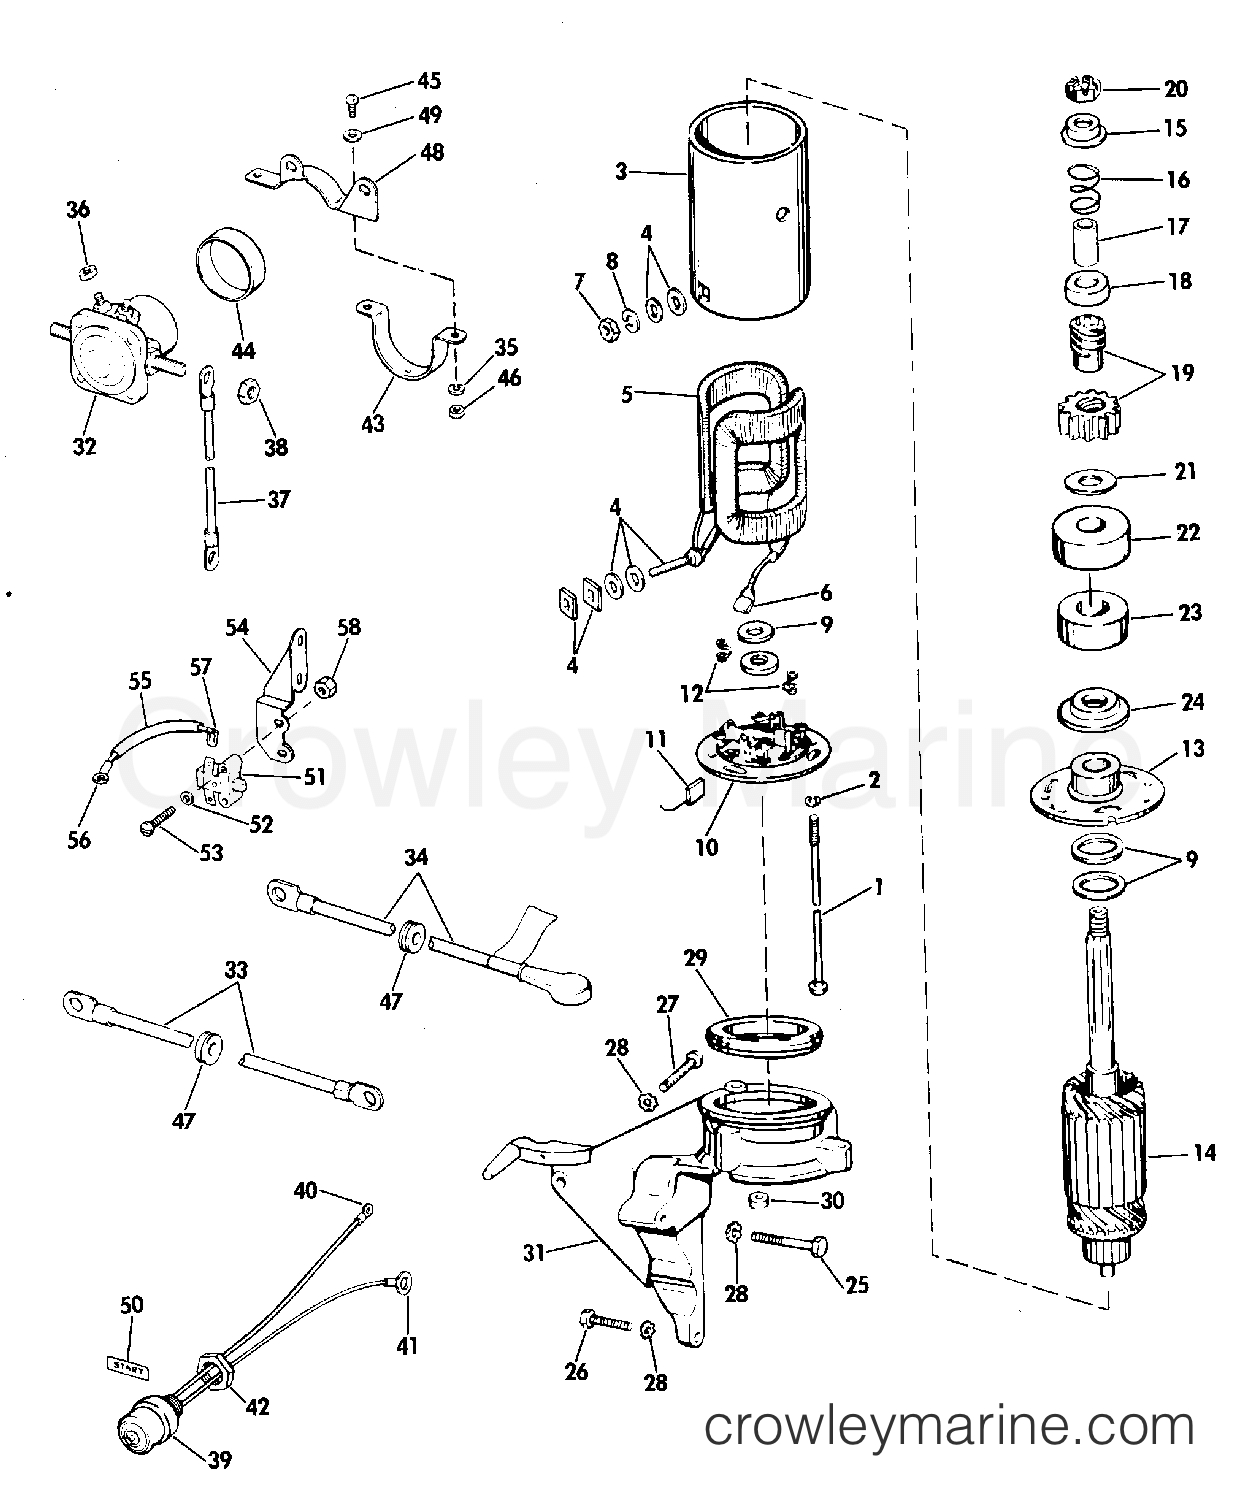 25 hp johnson outboard parts diagram automotive parts diagram images. Black Bedroom Furniture Sets. Home Design Ideas